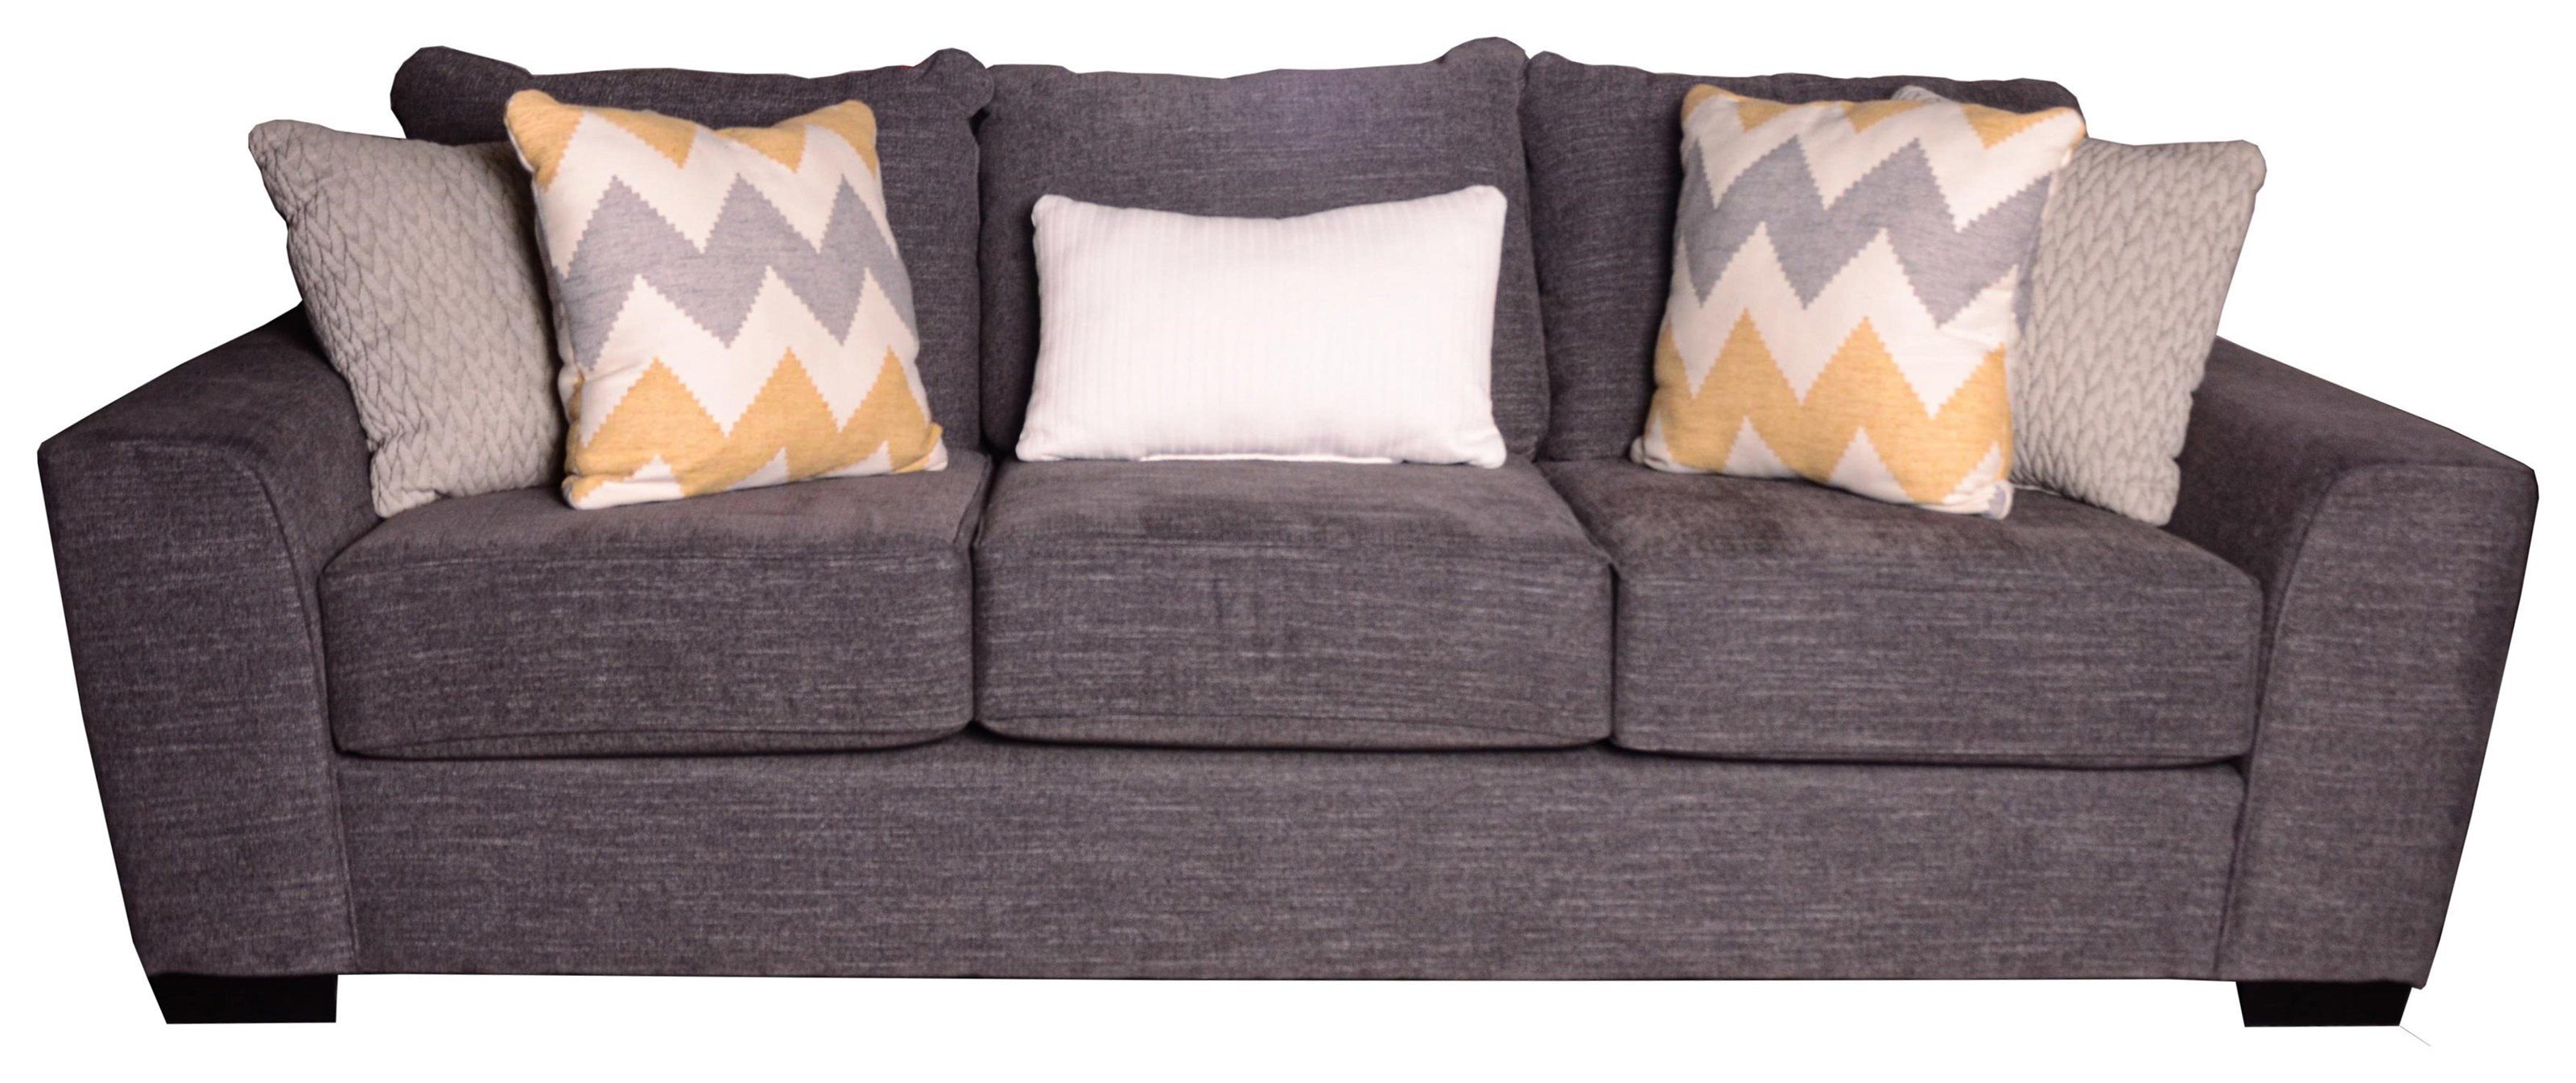 Desperado Curious Charcoal Sofa by Michael Nicholas at Beck's Furniture